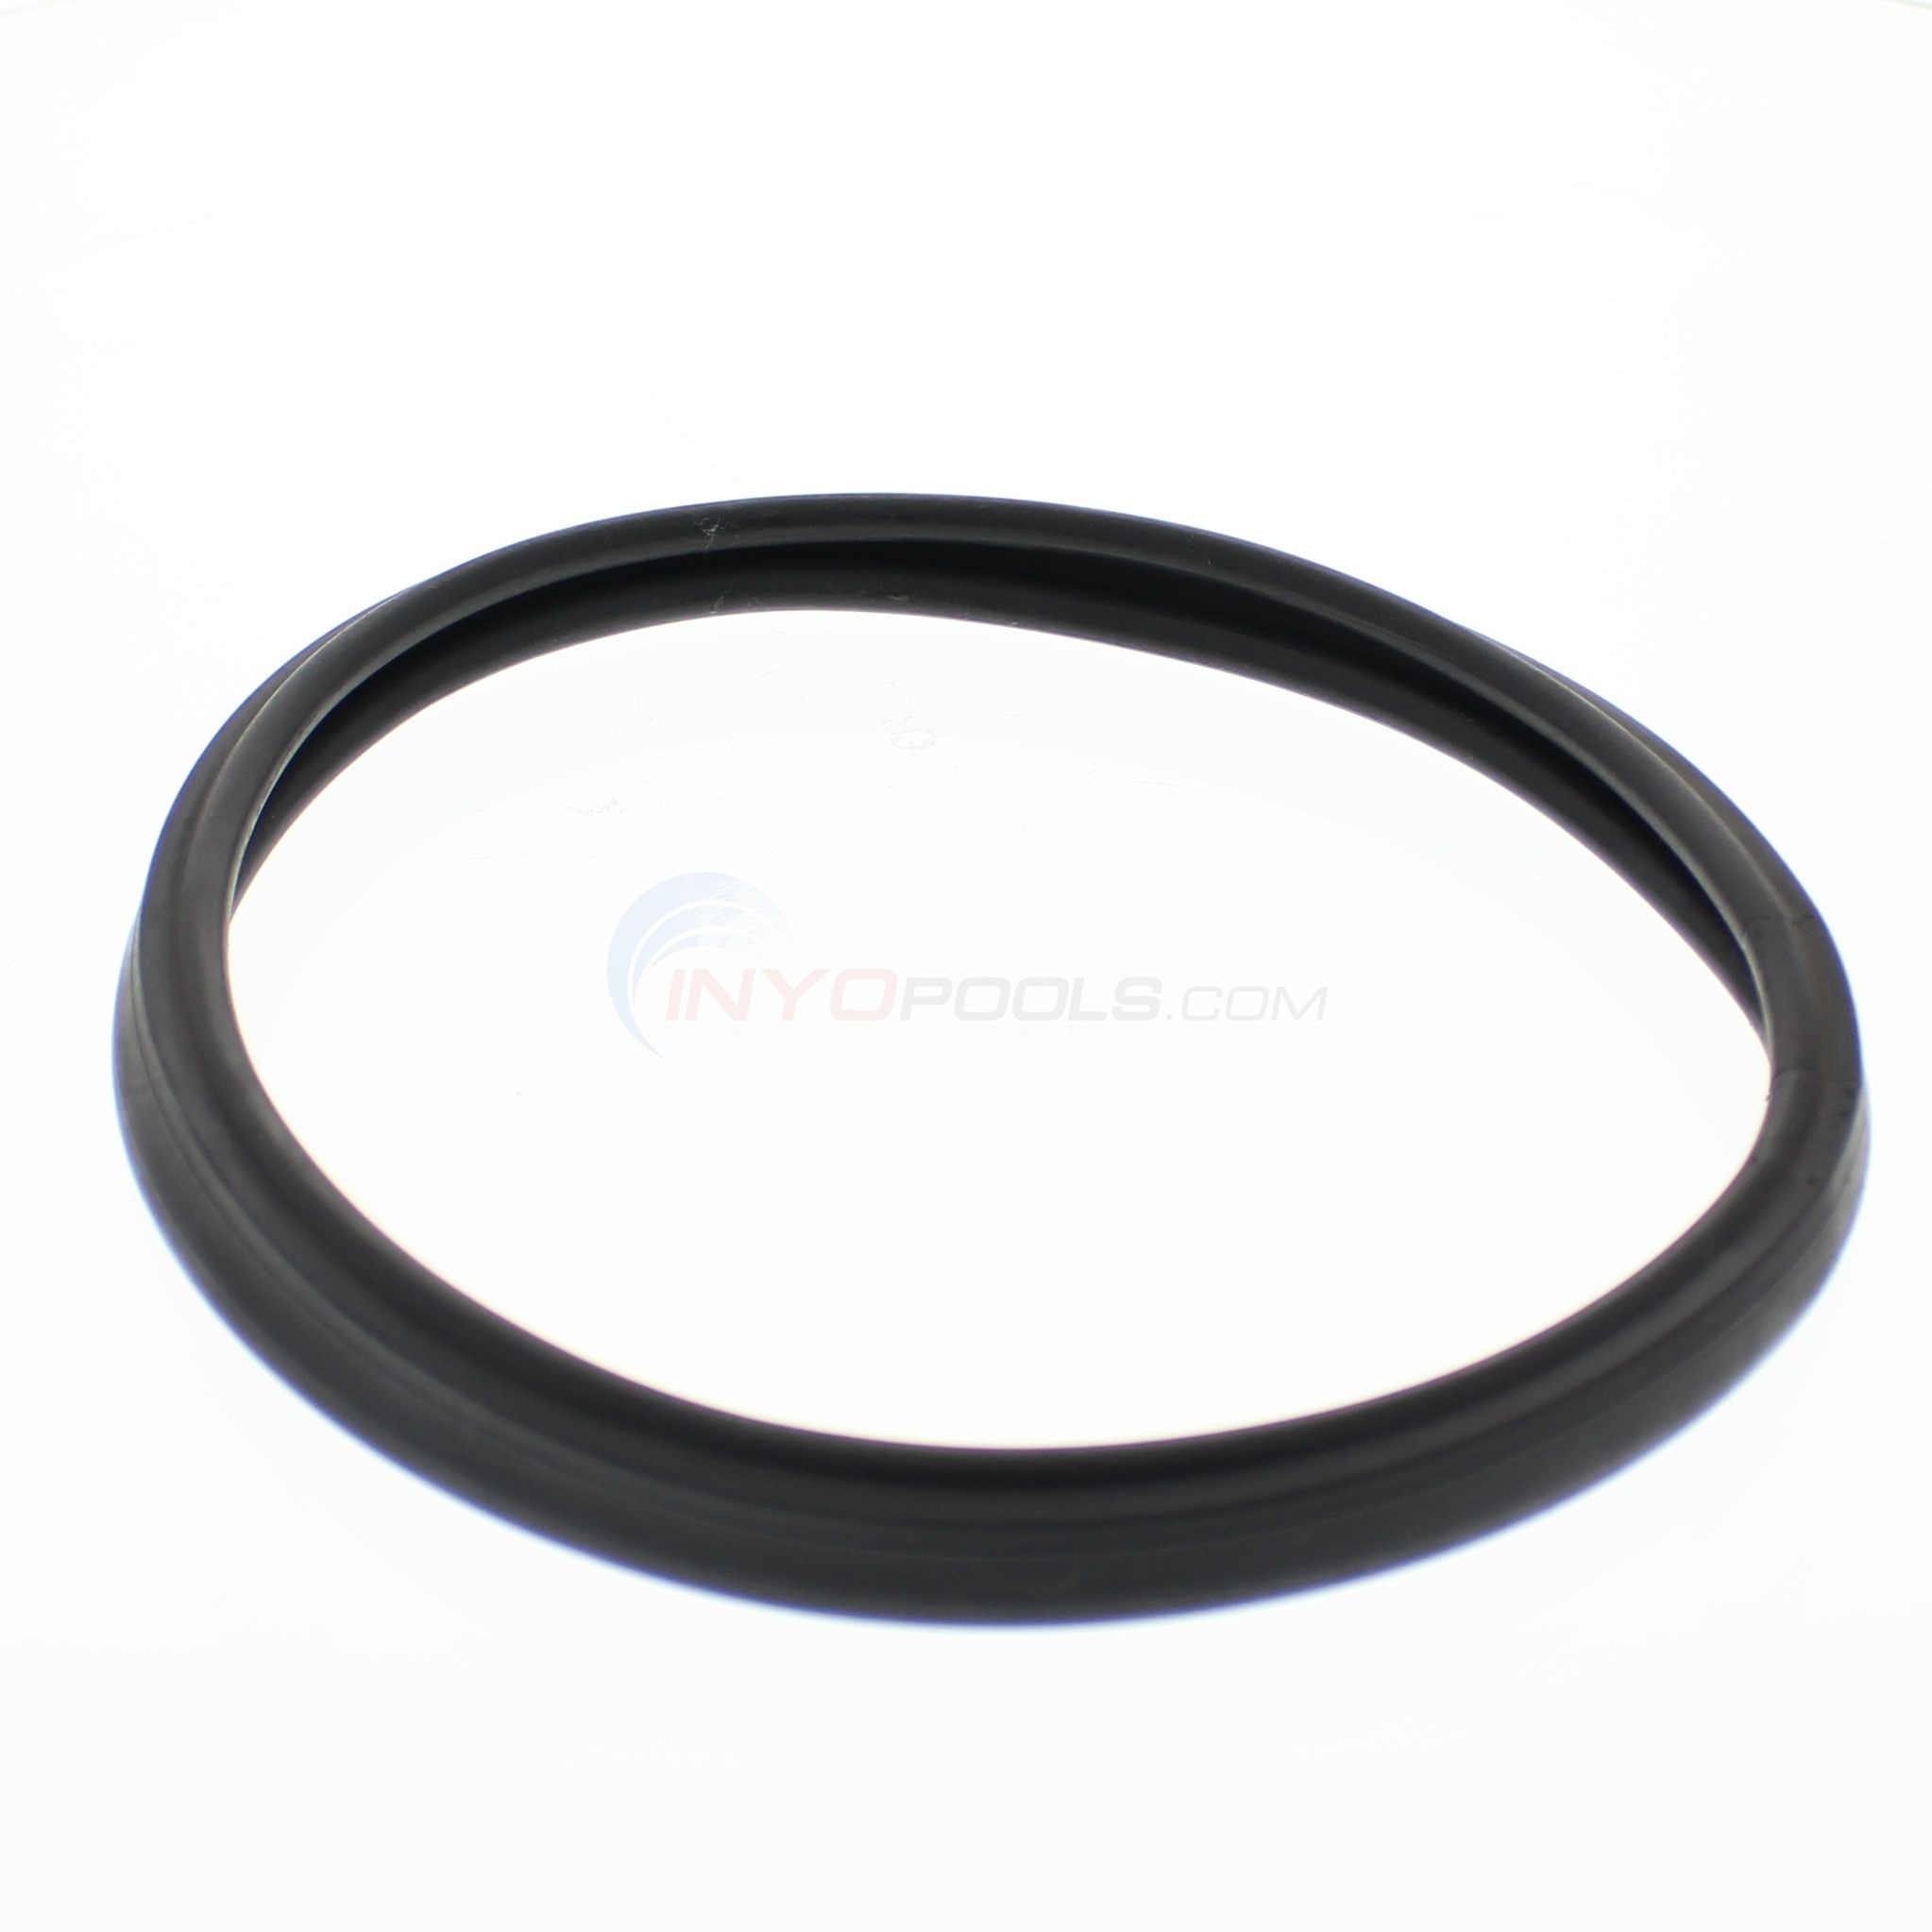 Gasket, Light Lens